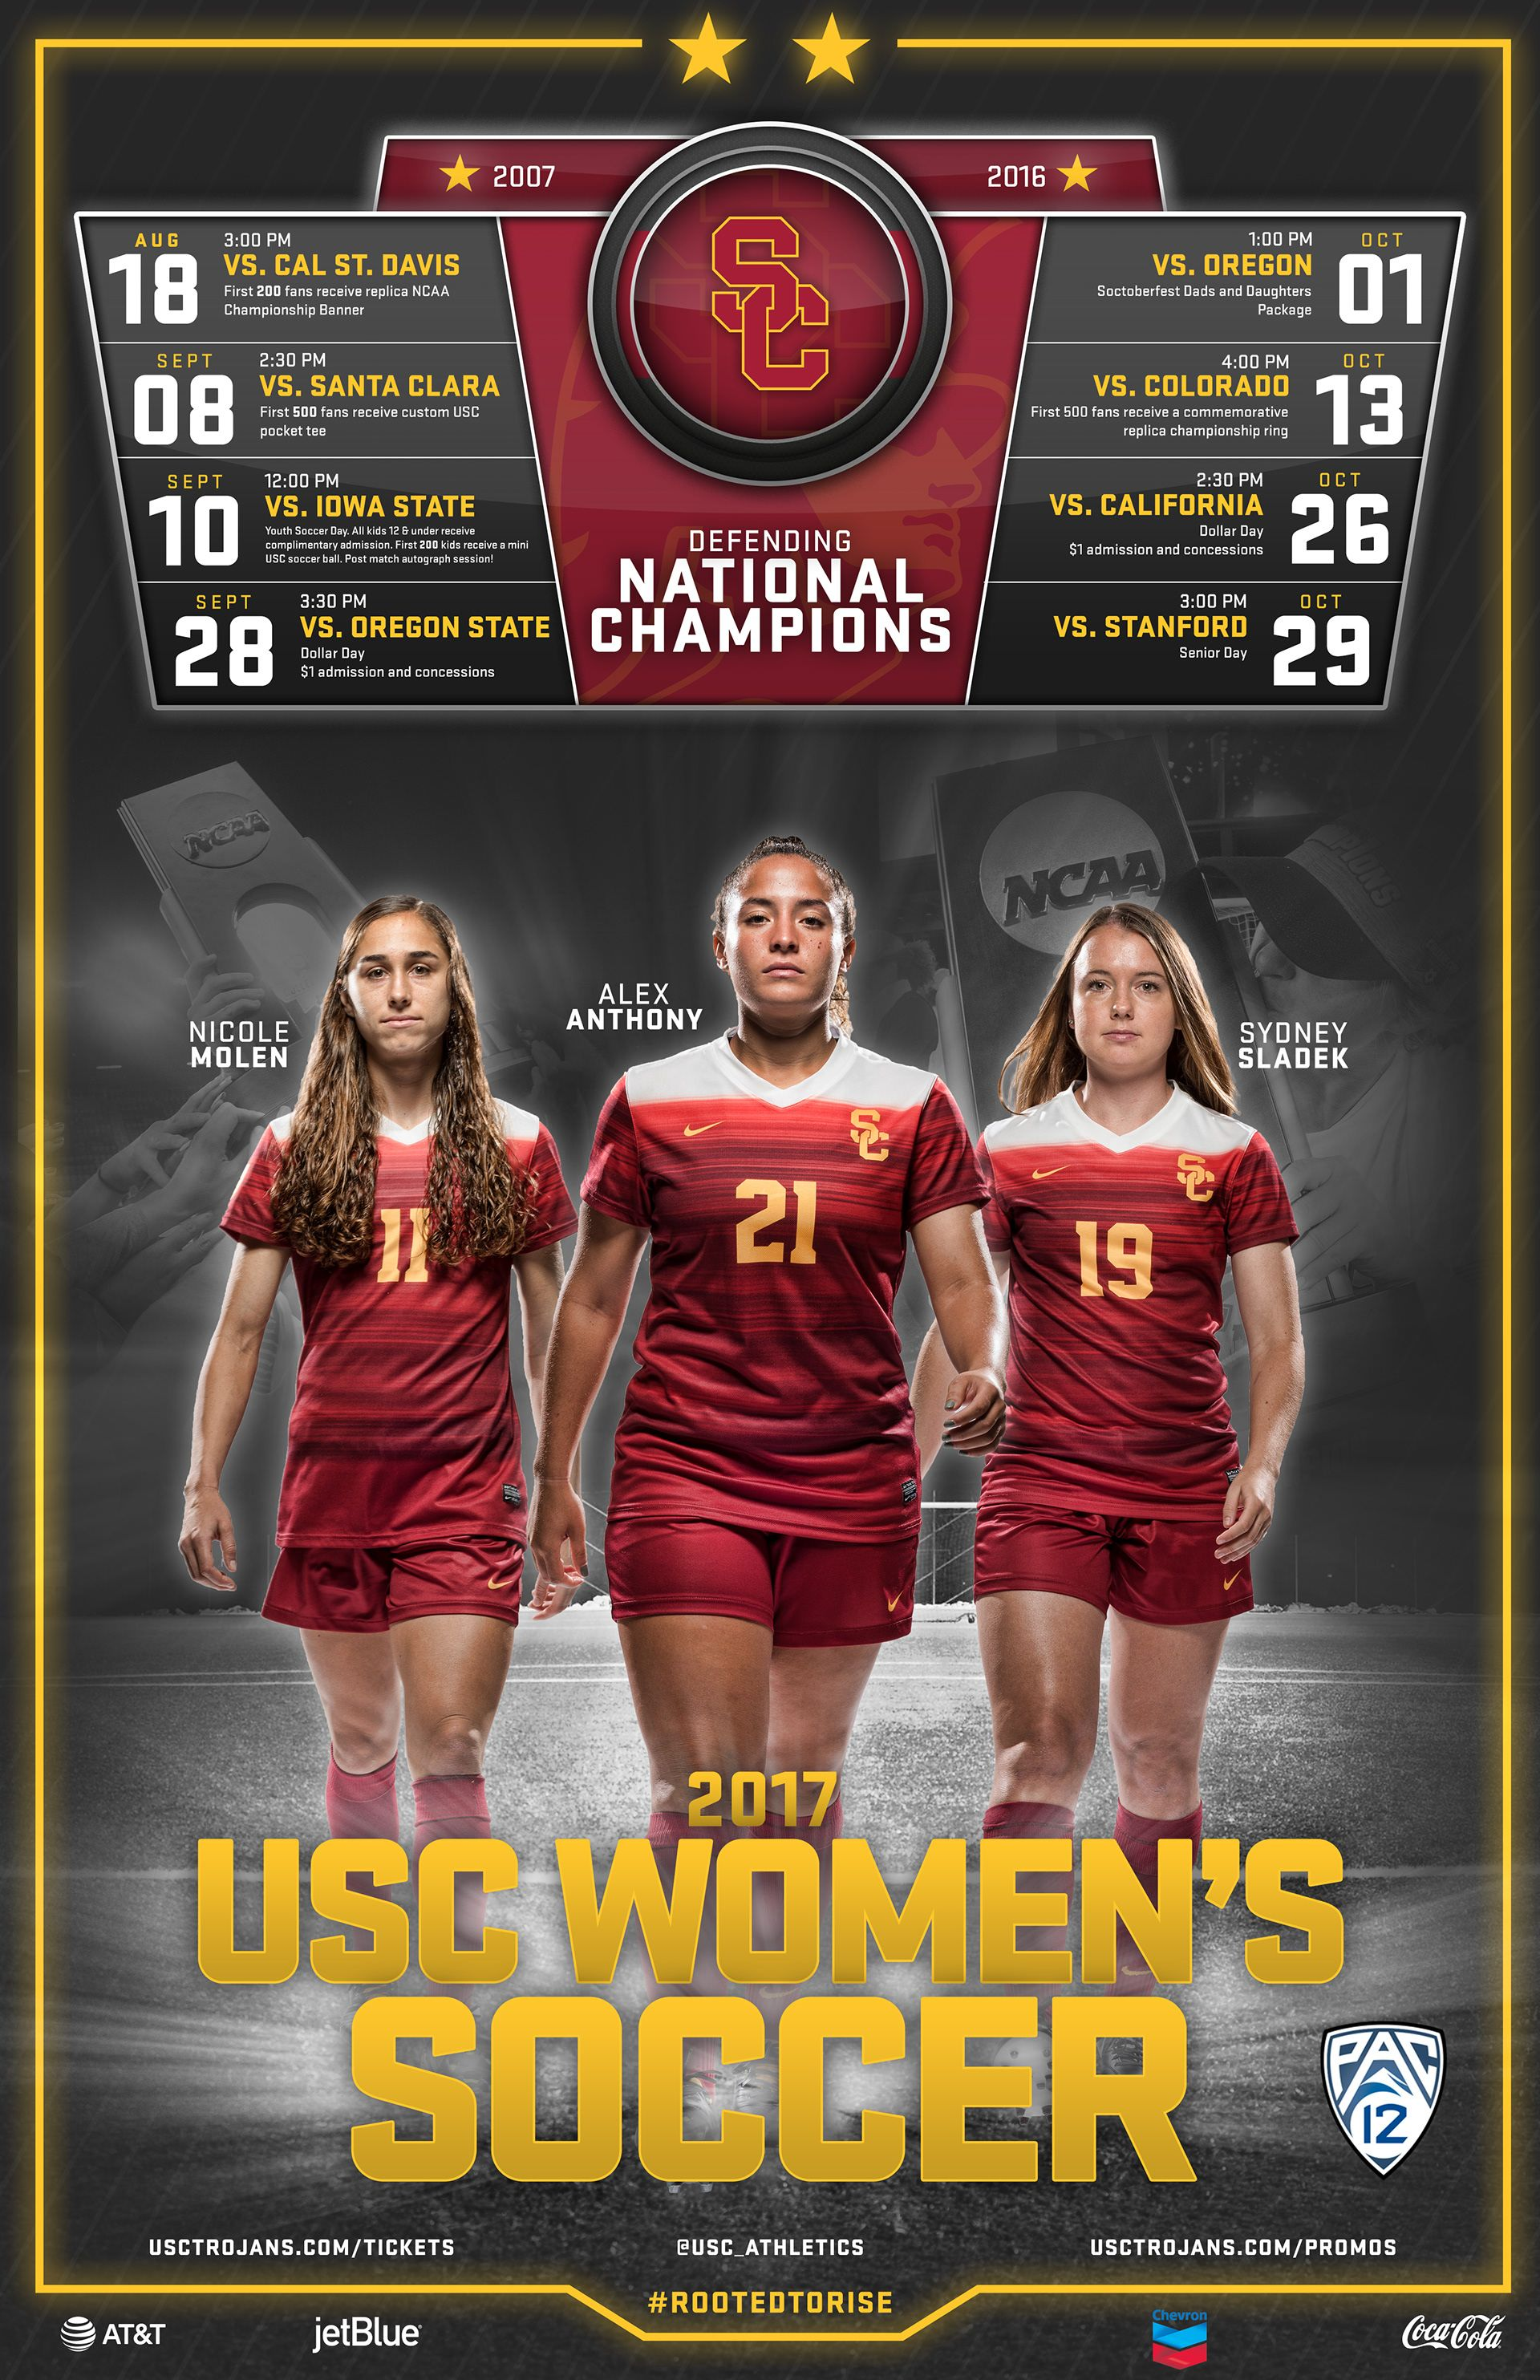 Deliverables For Usc Athletics 2017 Wip In 2020 With Images Usc Athletics College Sports Poster Athlete